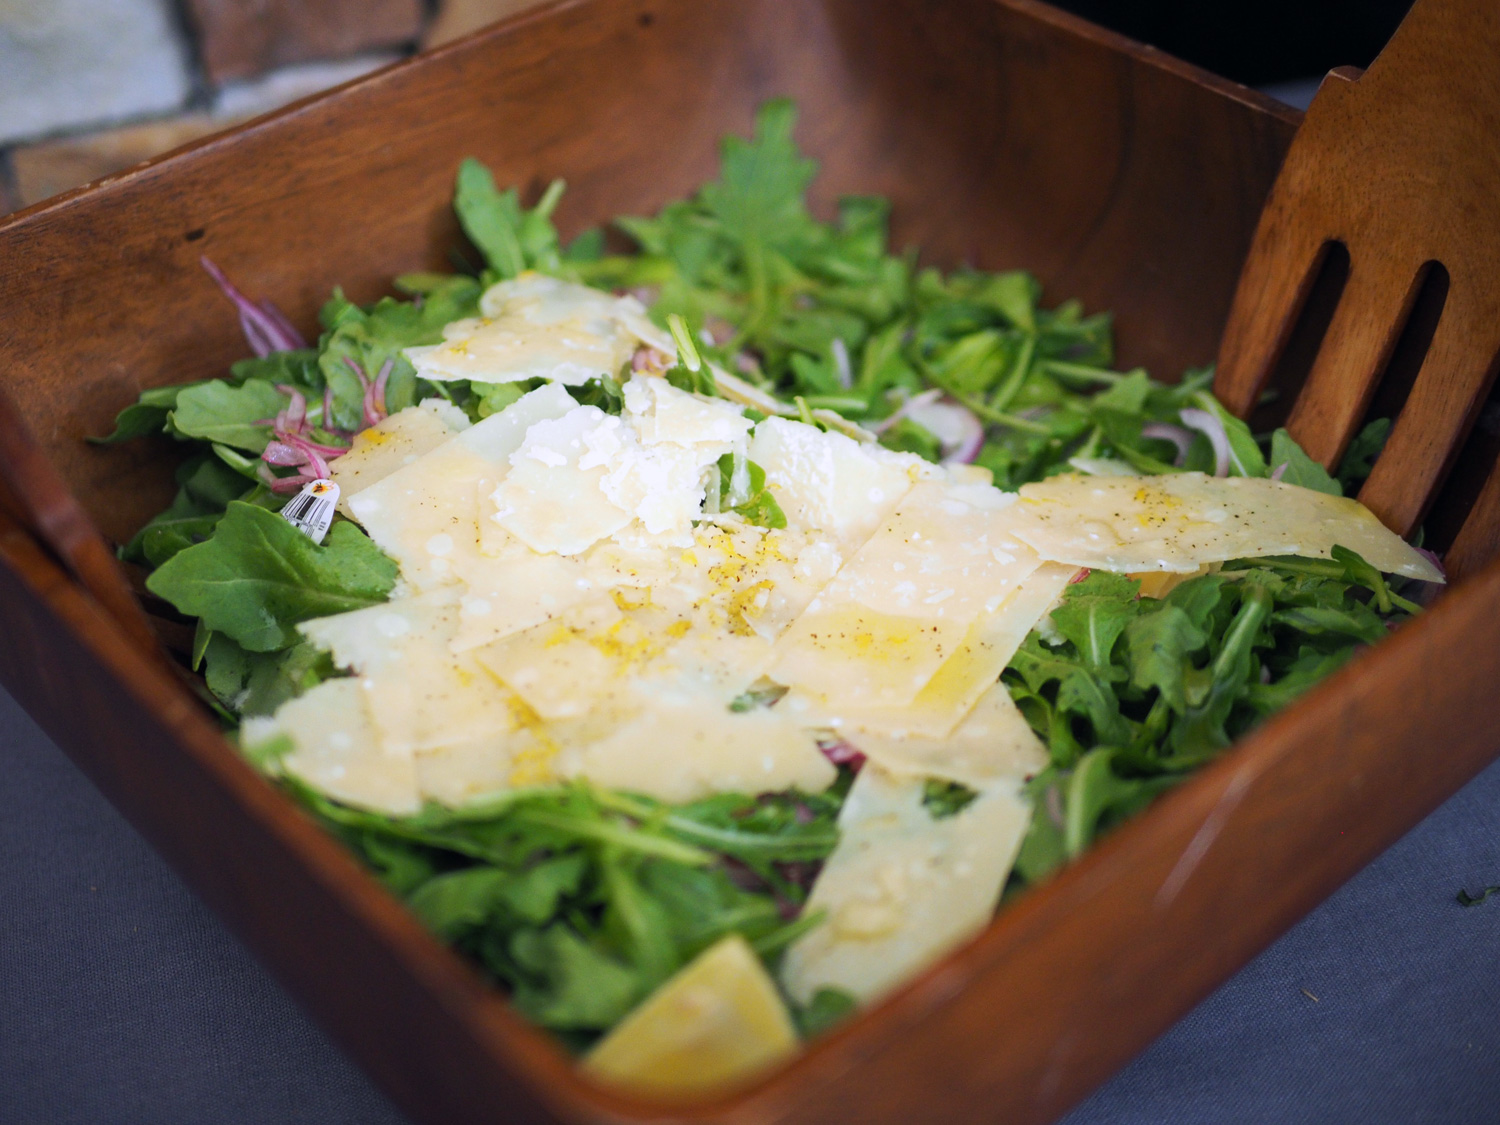 Peppery Arugula Salad with shaved Parmigiana Reggiano. It may be a simple salad but with just a few ingredients, it is a fresh, flavor punch.